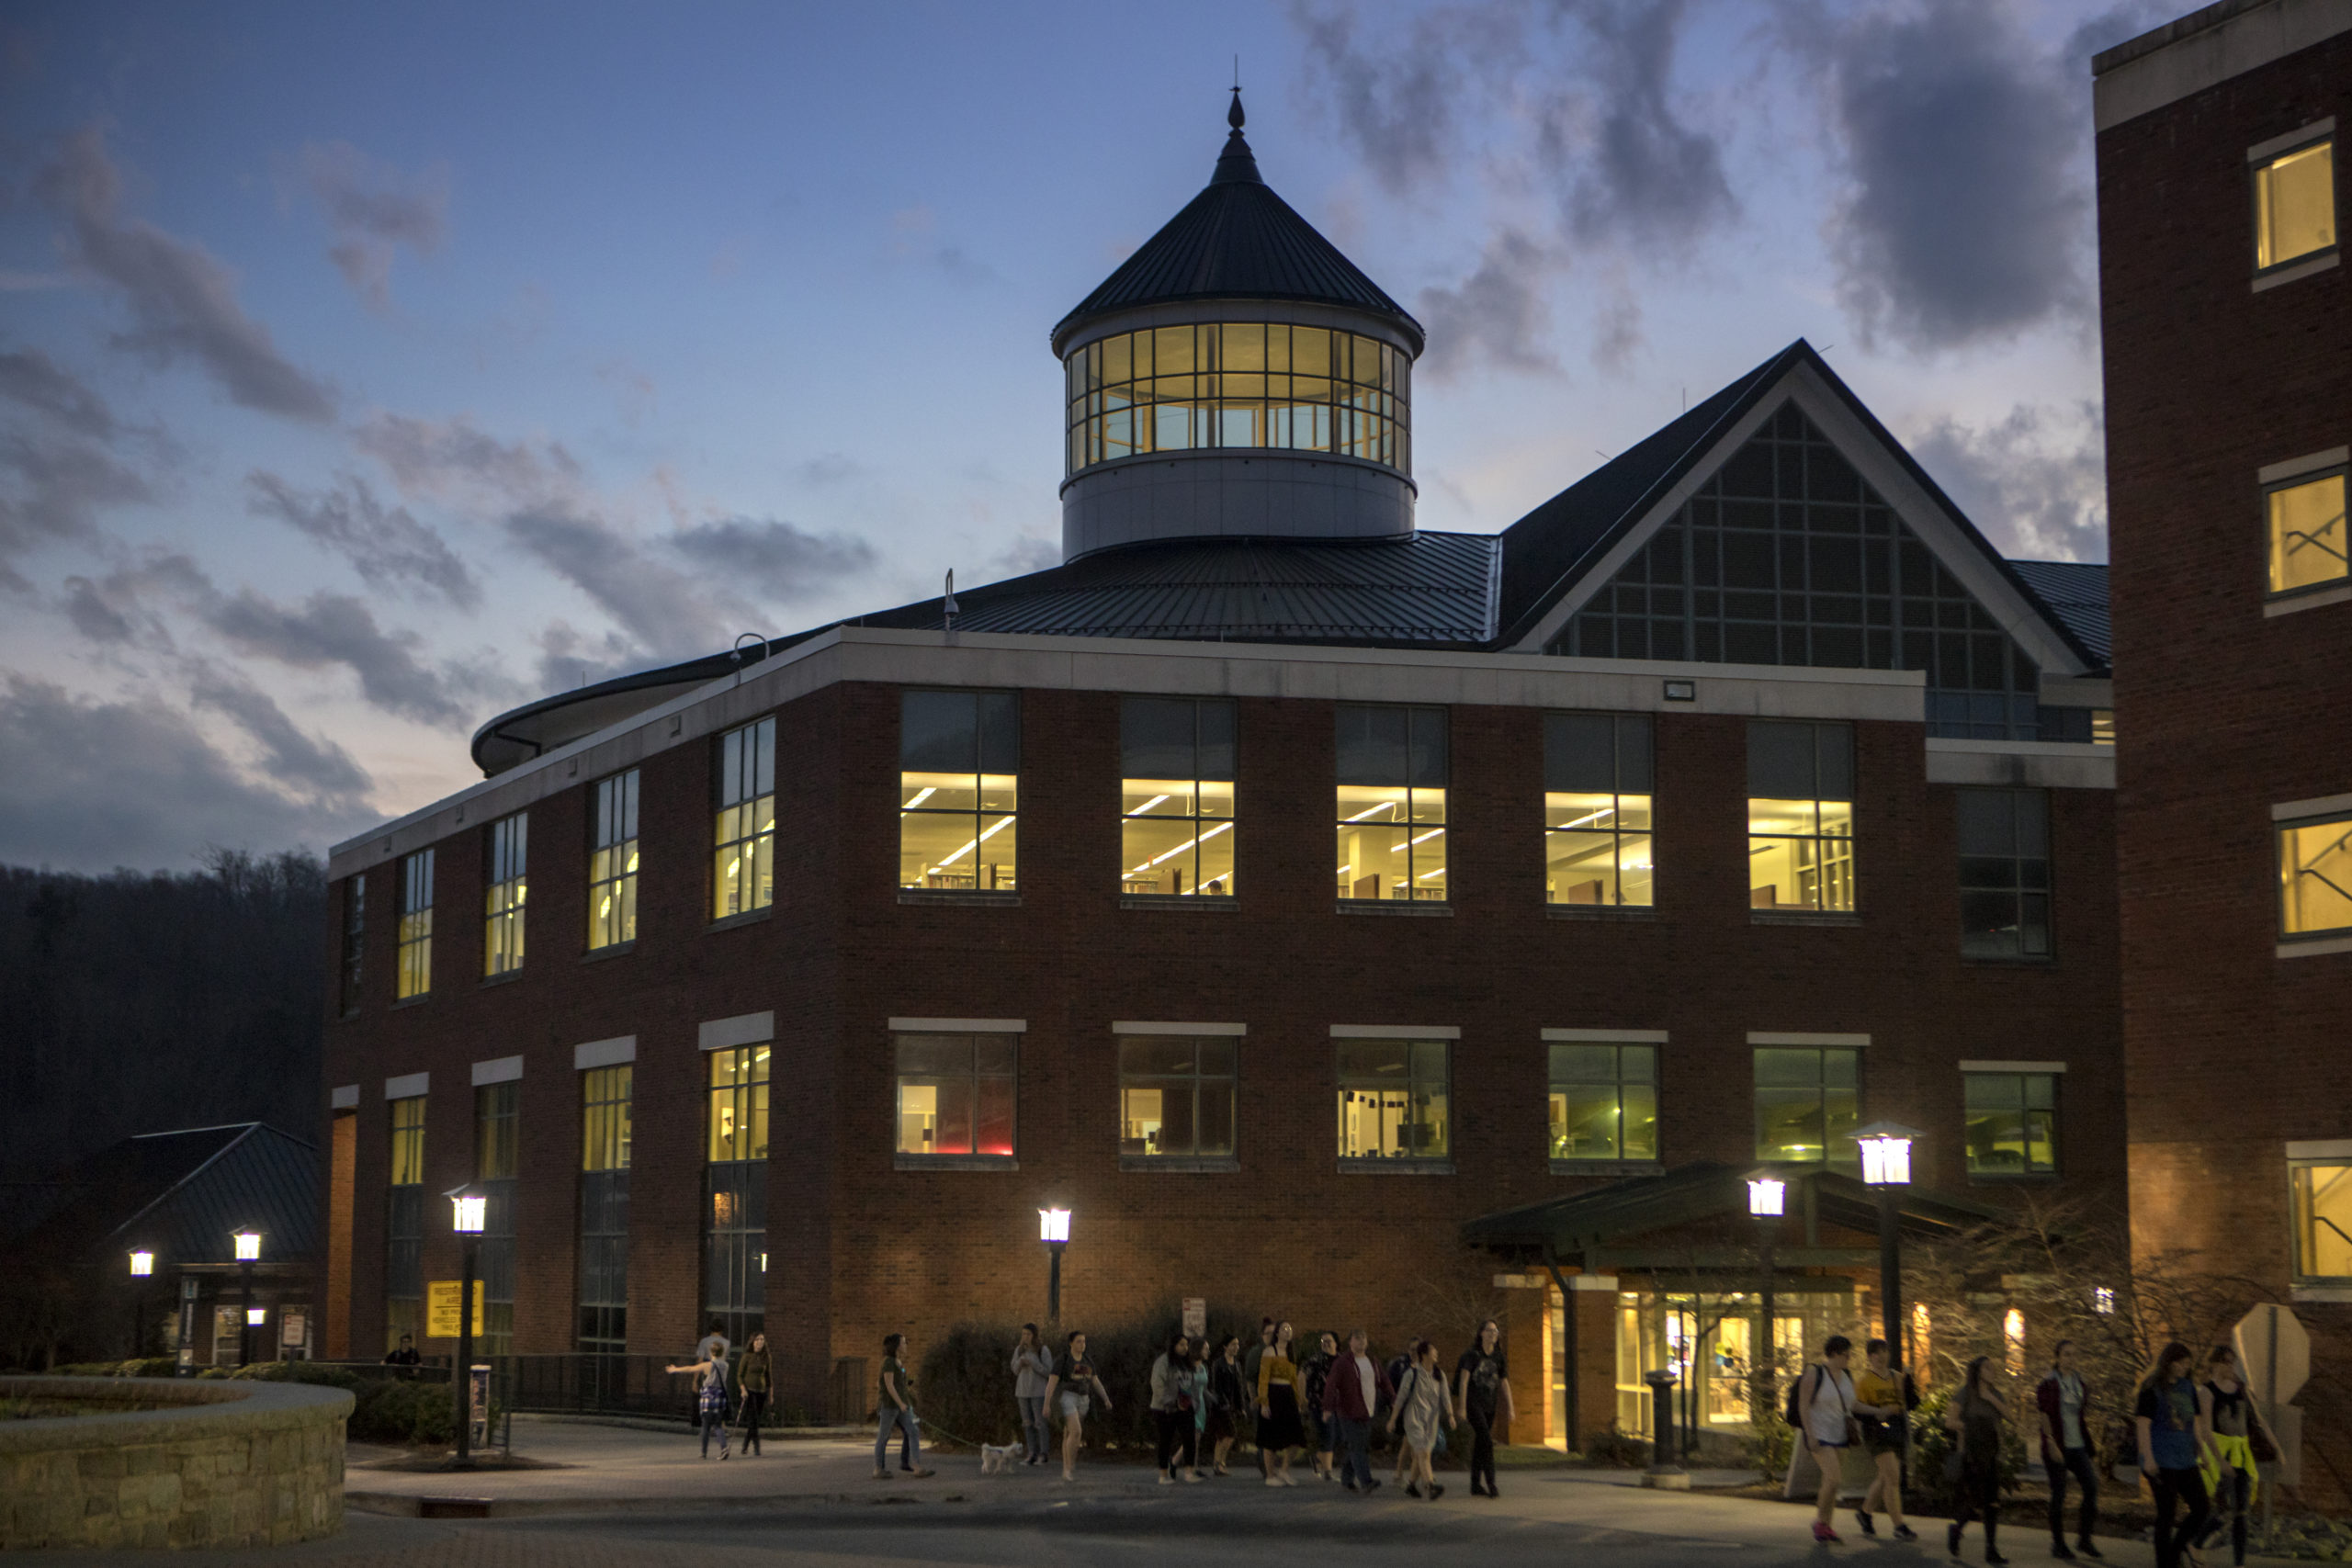 A building in the evening on Appalachian's Campus